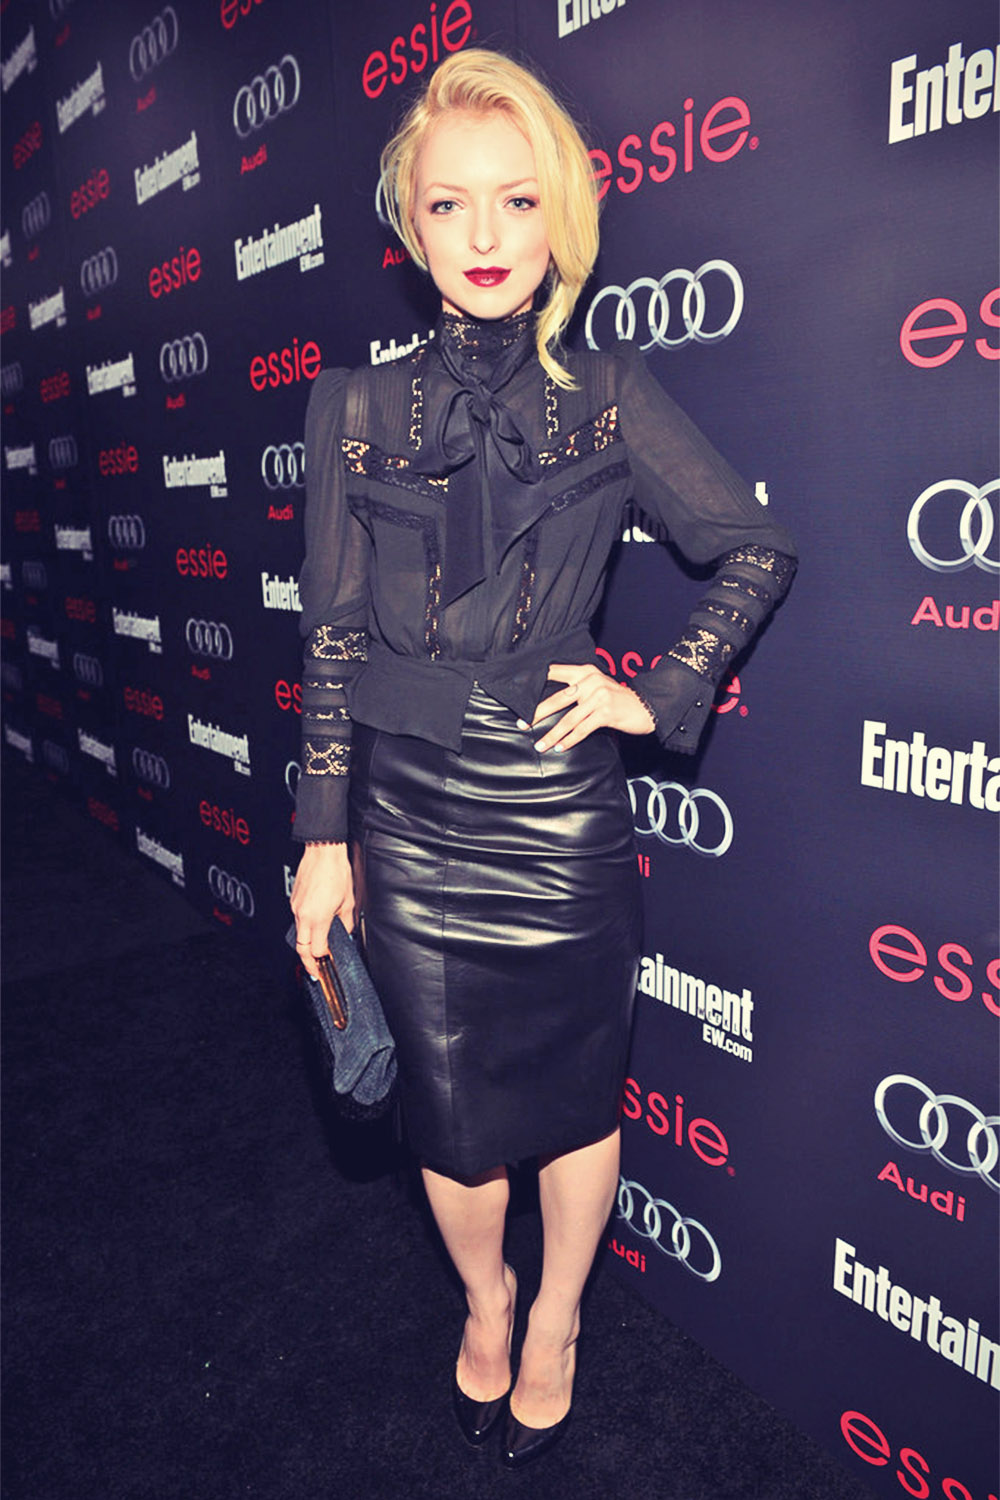 Francesca Eastwood attends the Entertainment Weekly Pre-SAG Party hosted by Essie and Audi held at C